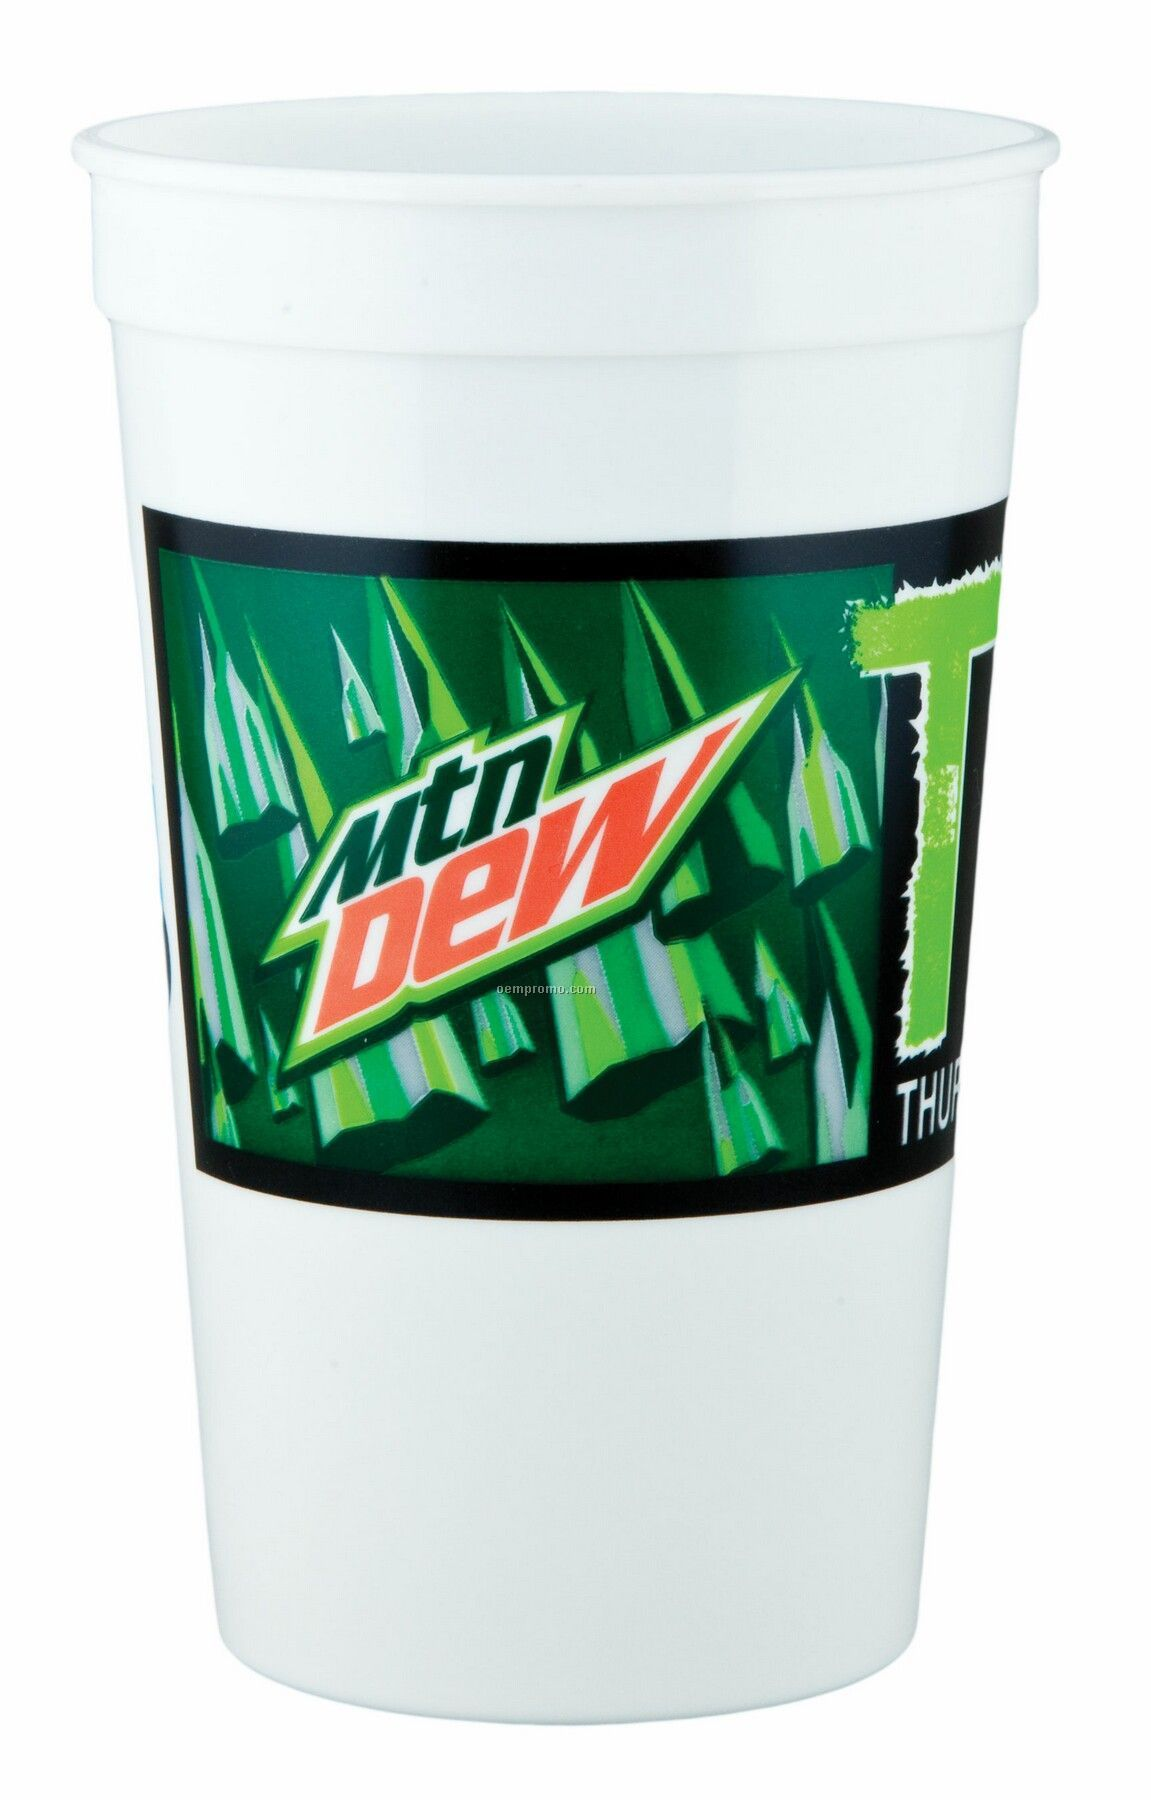 32 Oz. Offset Smooth Plastic Stadium Cup